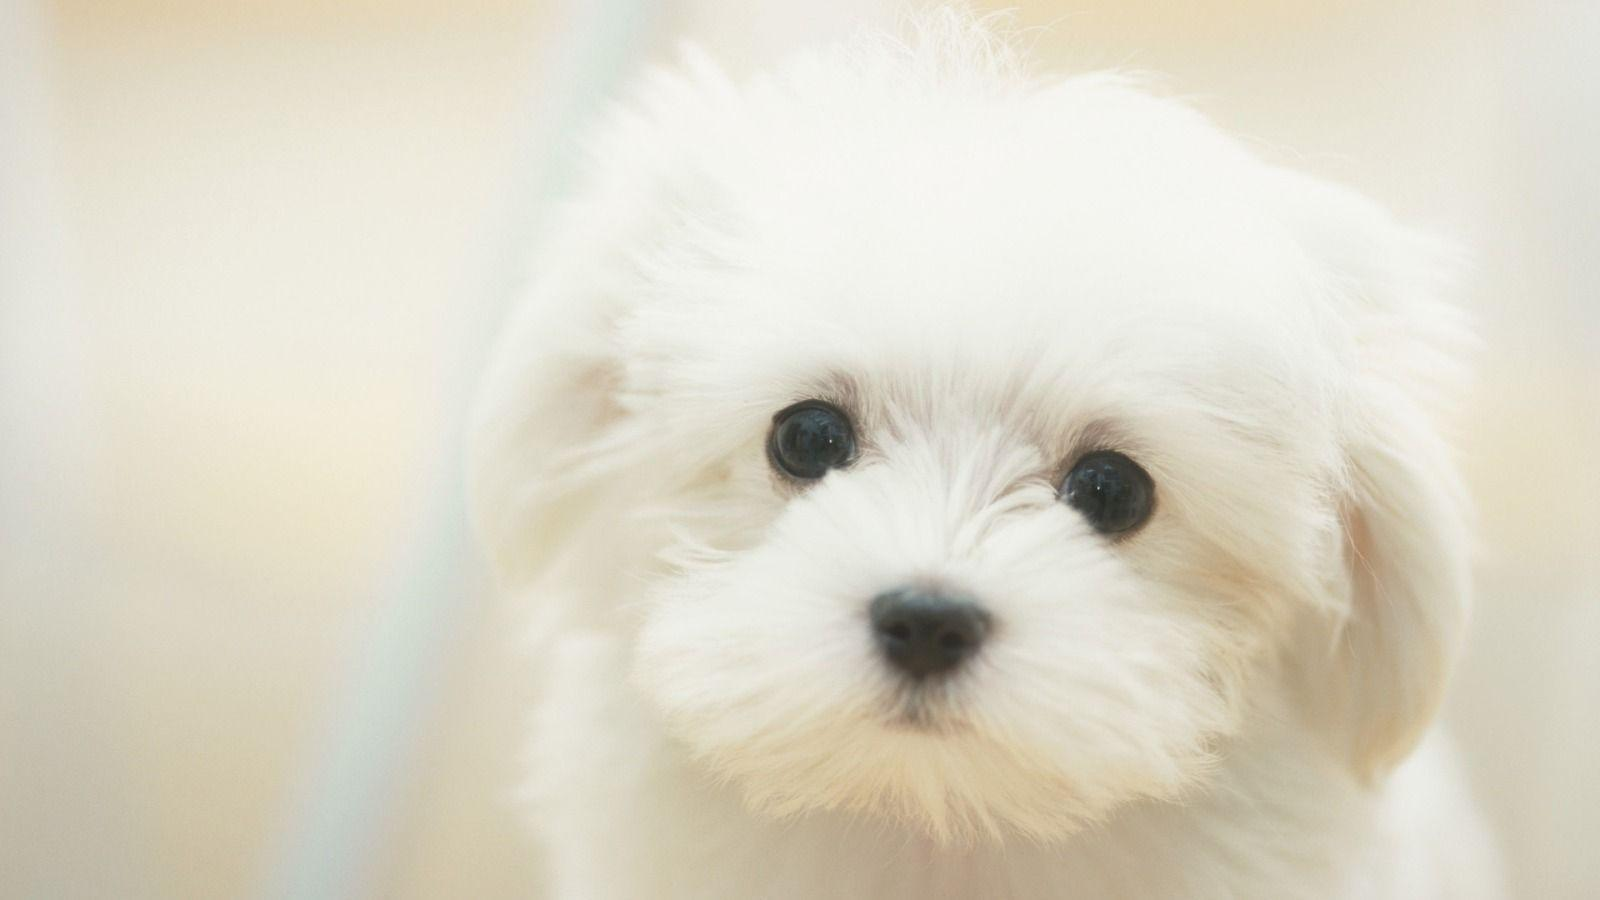 Collection of Cute Puppies Wallpapers on HDWallpapers